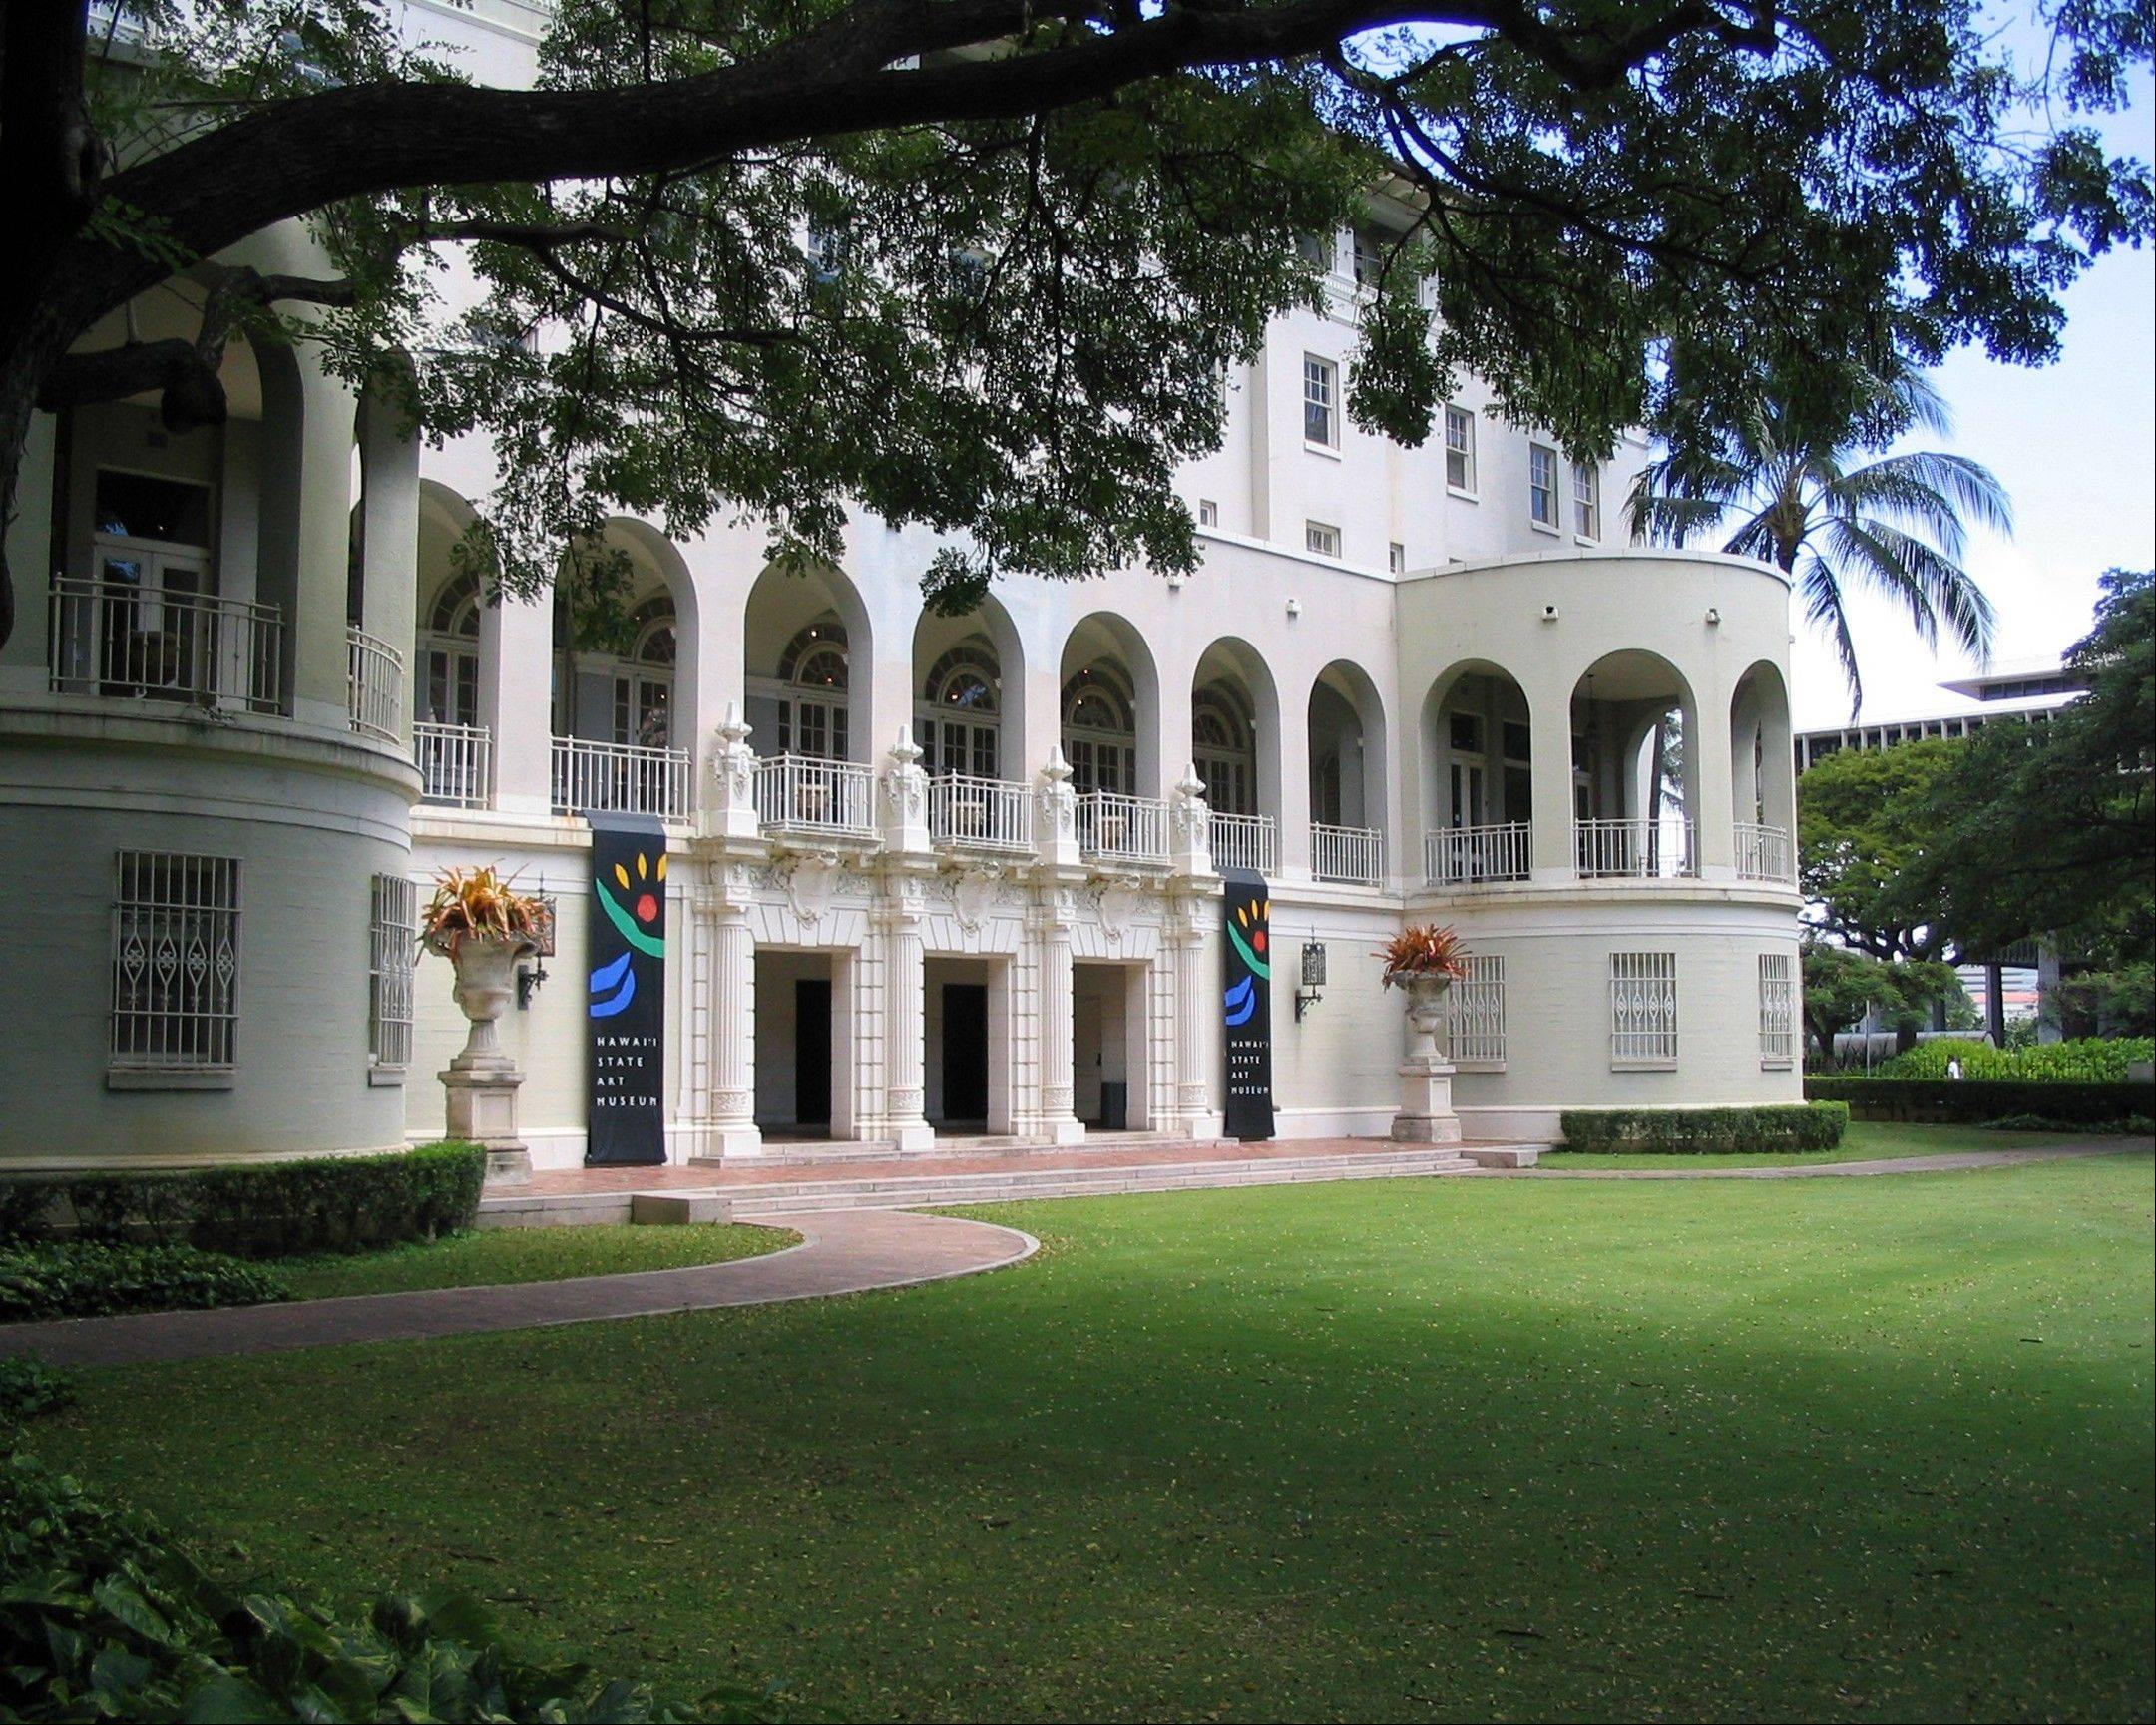 The Hawaii State Art Museum, located in historic downtown Honolulu, is one of a number of free things to do in Hawaii's capital.